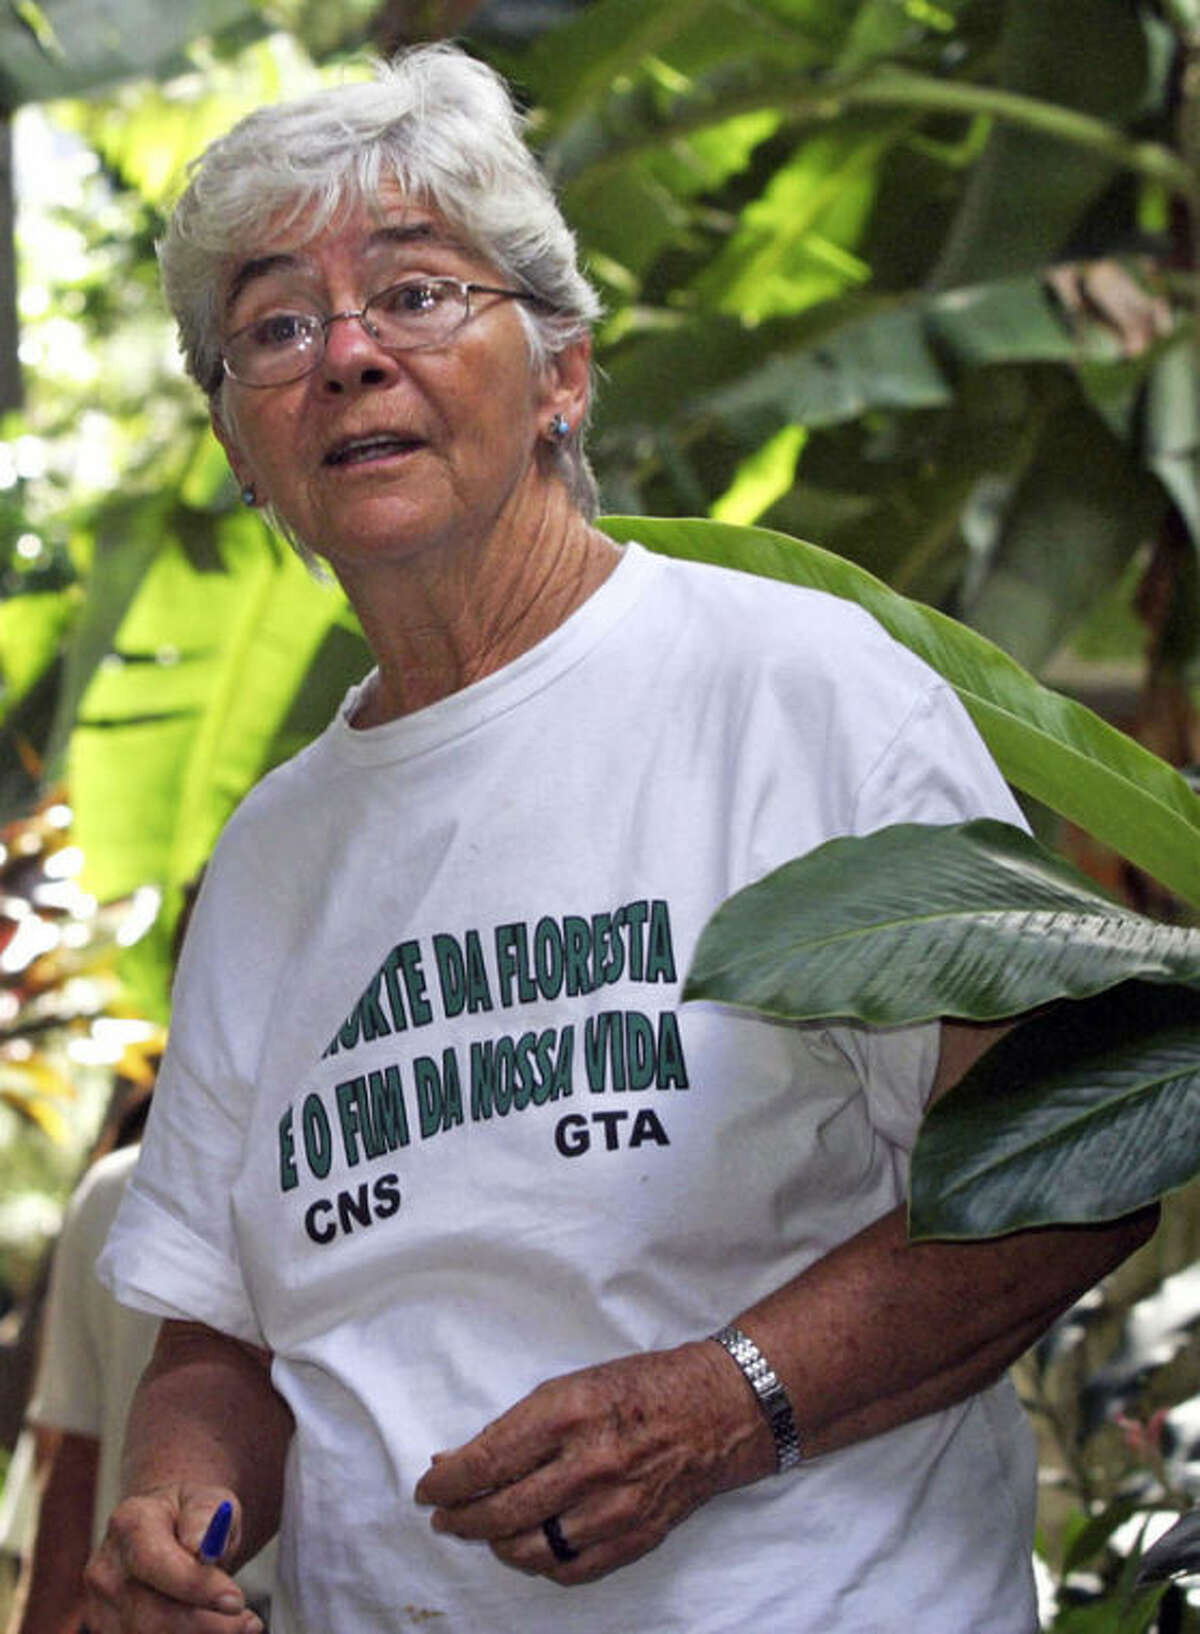 FILE - In this Feb. 12, 2004 file photo, U.S. nun Dorothy Stang, of Dayton, Ohio, prepares to enter Para's legislature in Belem, Brazil. The latest in a series of trials has begun for a landowner convicted of ordering the 2005 slaying of Stang. A verdict is expected by the end of the day Thursday, Sept. 19, 2013. (AP Photo/Carlos Silva, Imapress, file)